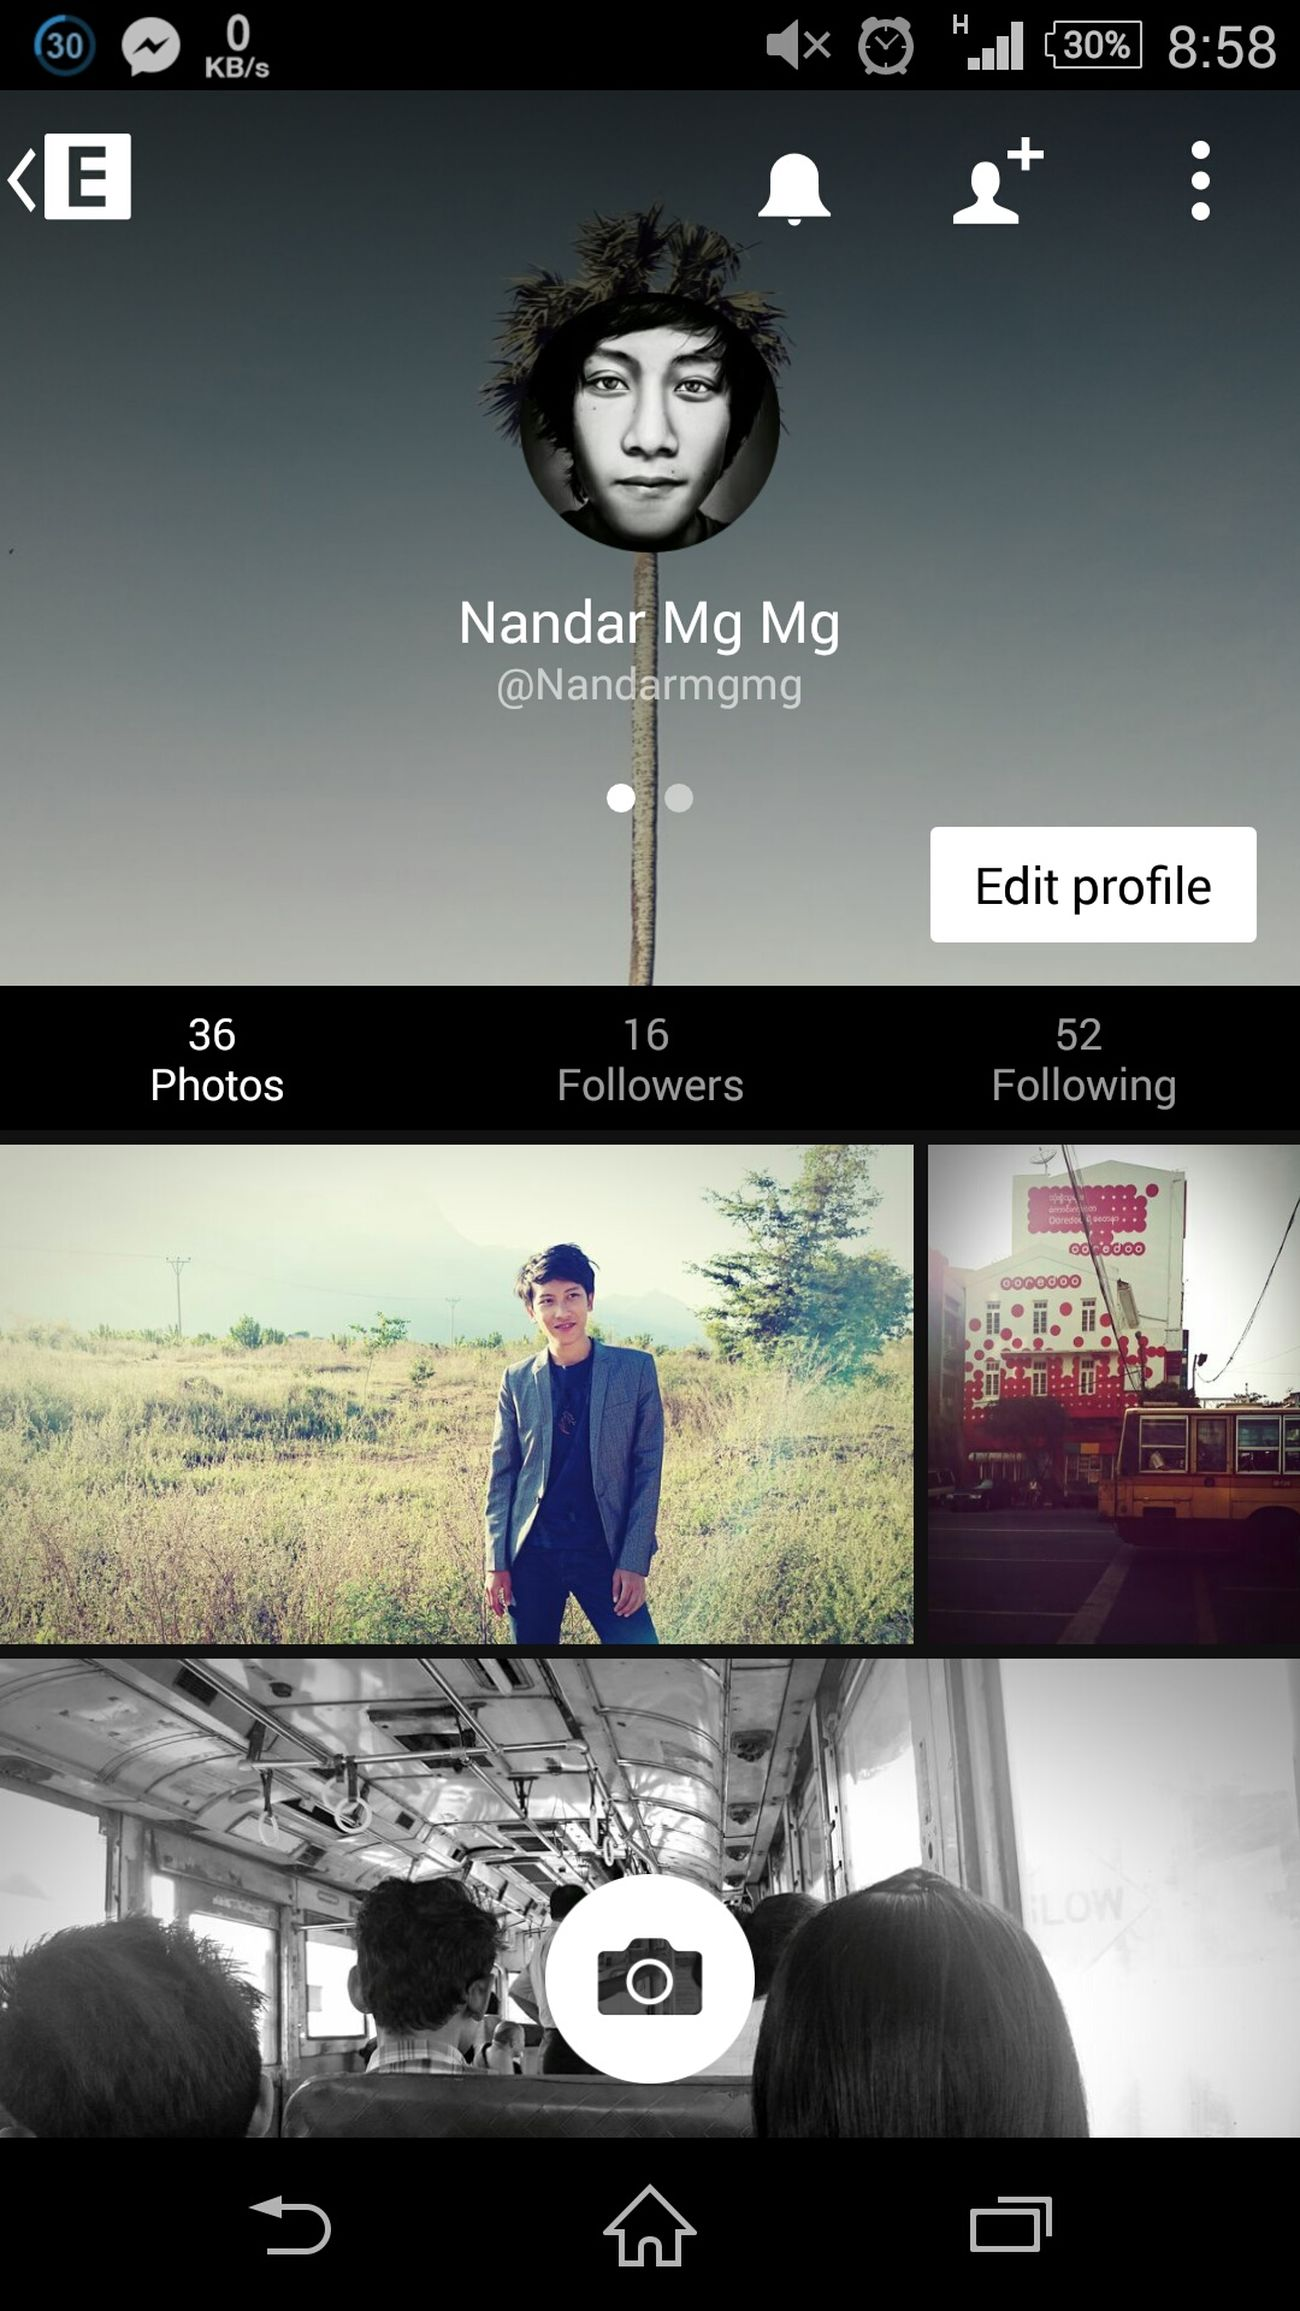 Profile EyeEm Eyeem Profile Creative Idea Profile Picture Hi Follow Me Add Me